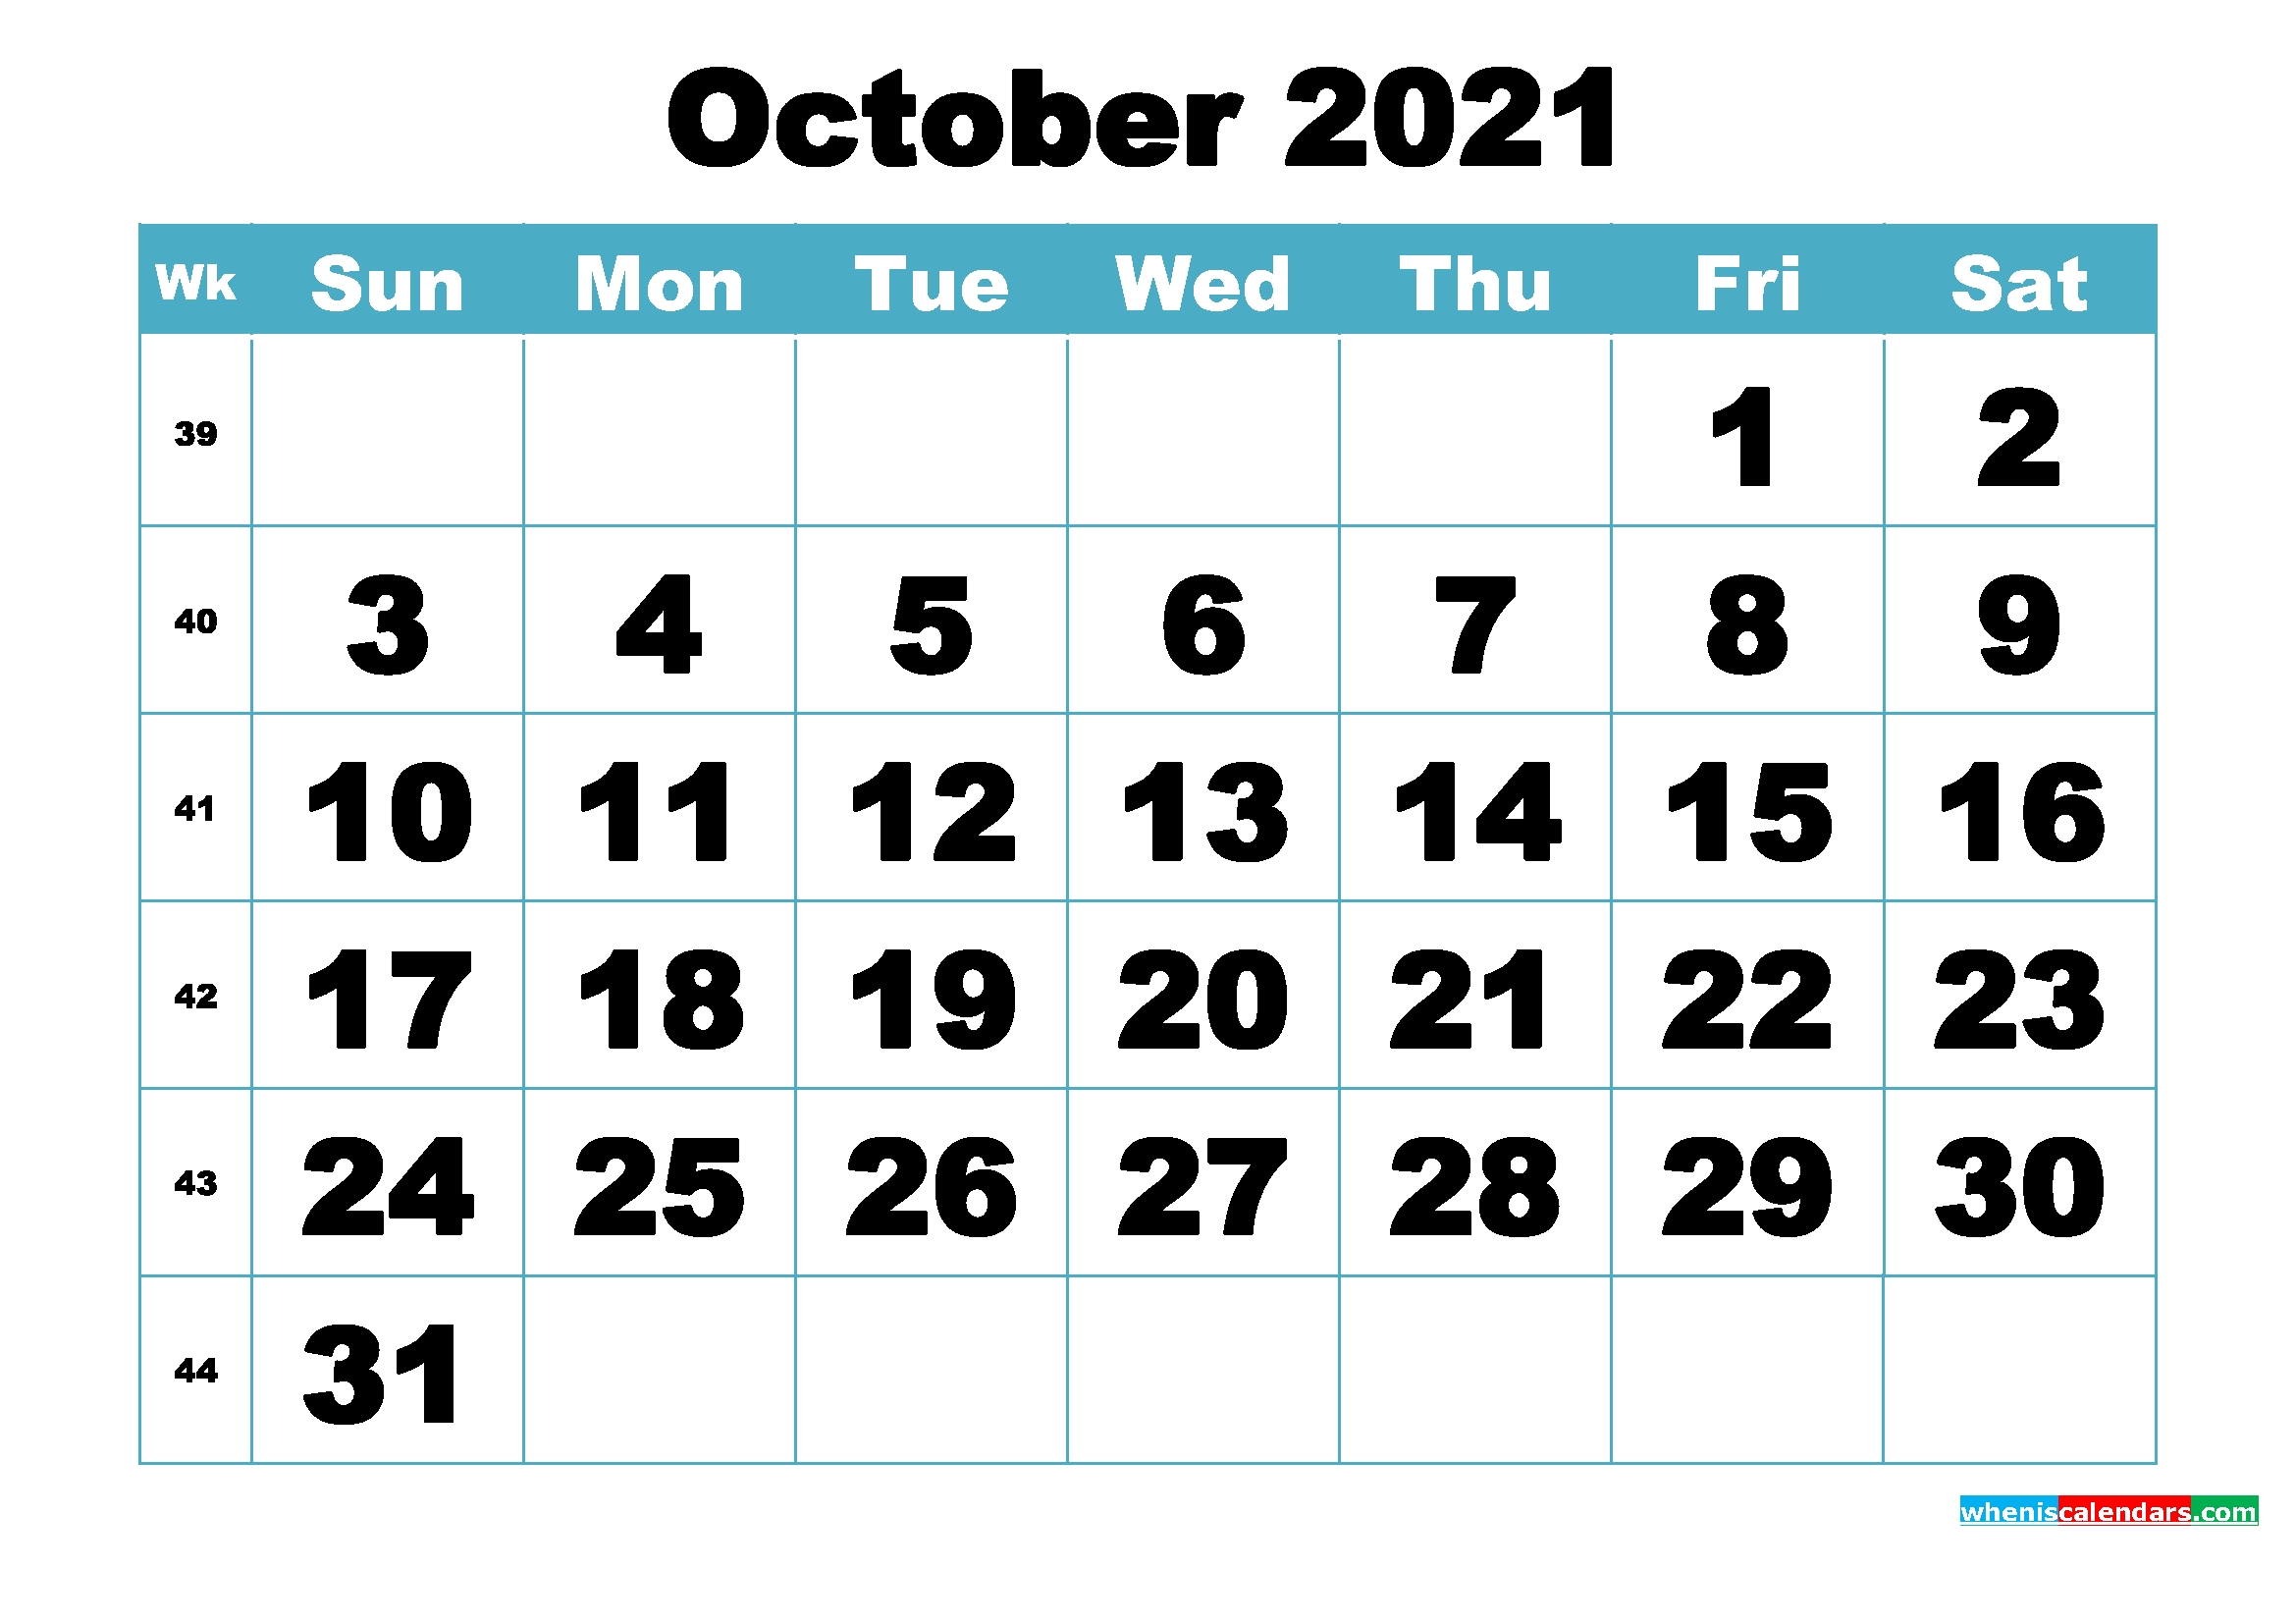 Free October 2021 Printable Monthly Calendar Template - Free Printable 2021 Monthly Calendar October 2021 Calendar To Print